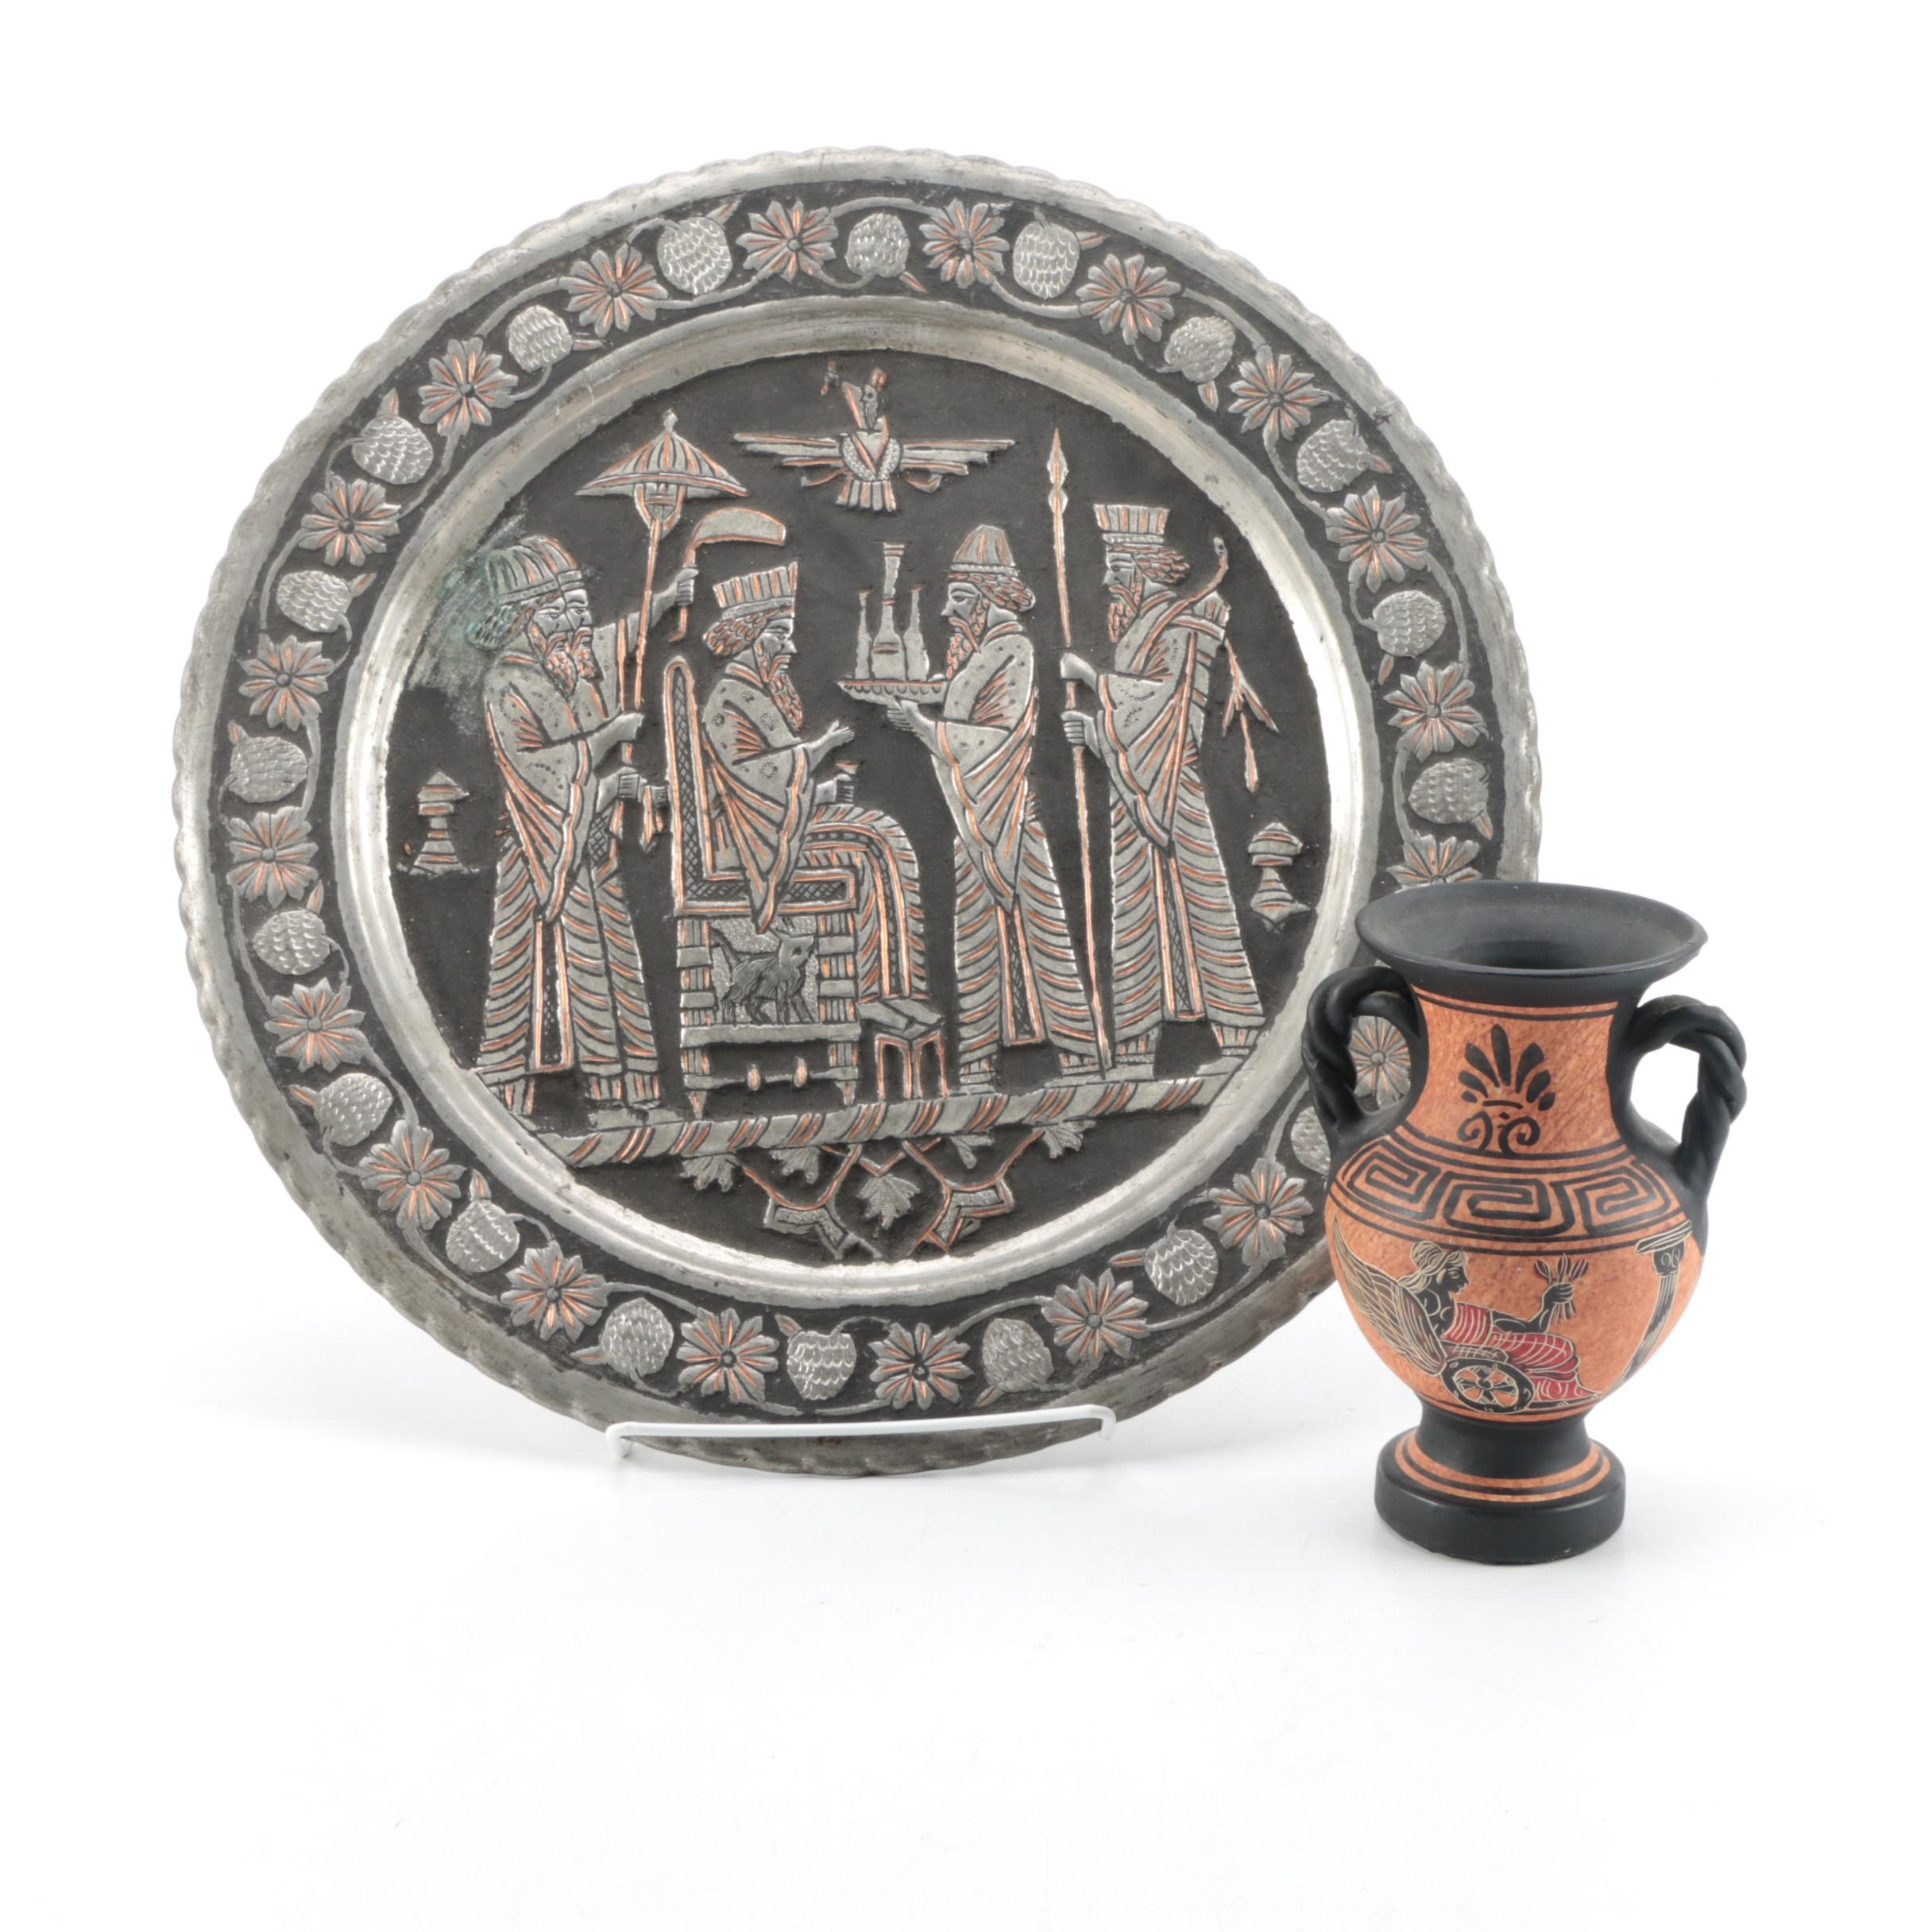 Ancient Persian and Greek Style Decorative Vessels